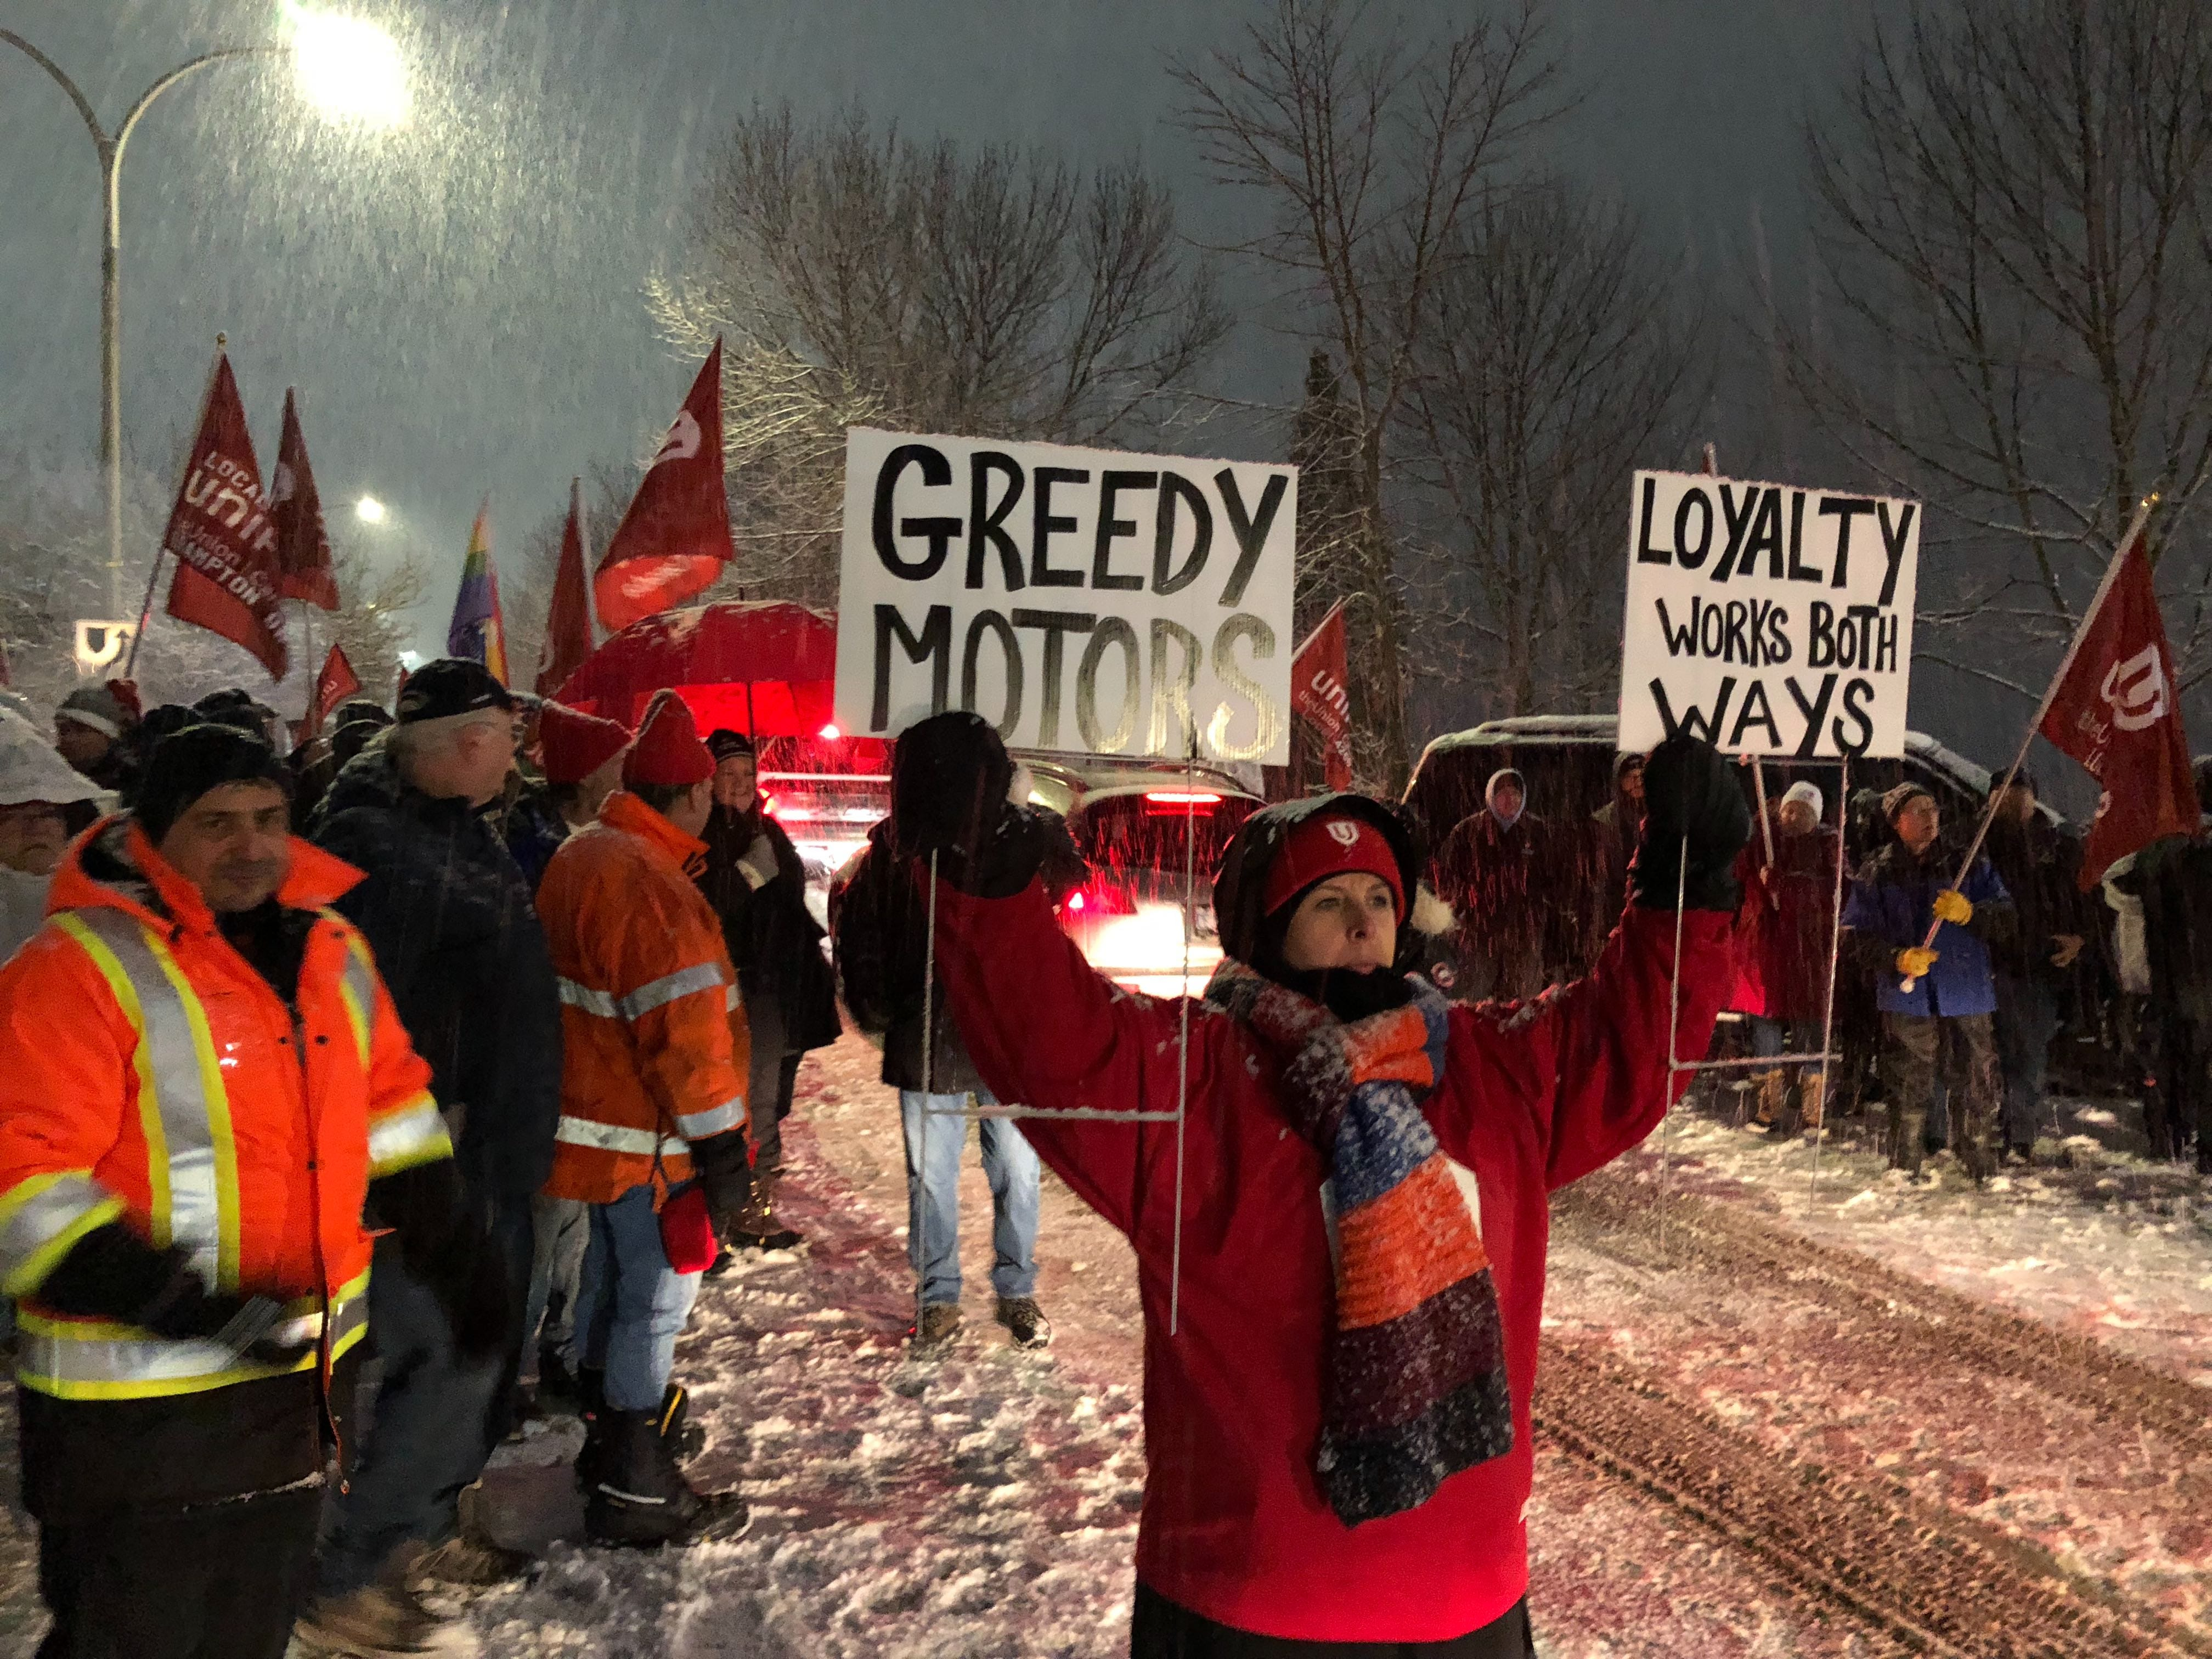 Unifor members protest in front of General Motors headquarters in Ontario, Canada, in 2019 over GM's decision to idle its Oshawa Assembly plant this year.